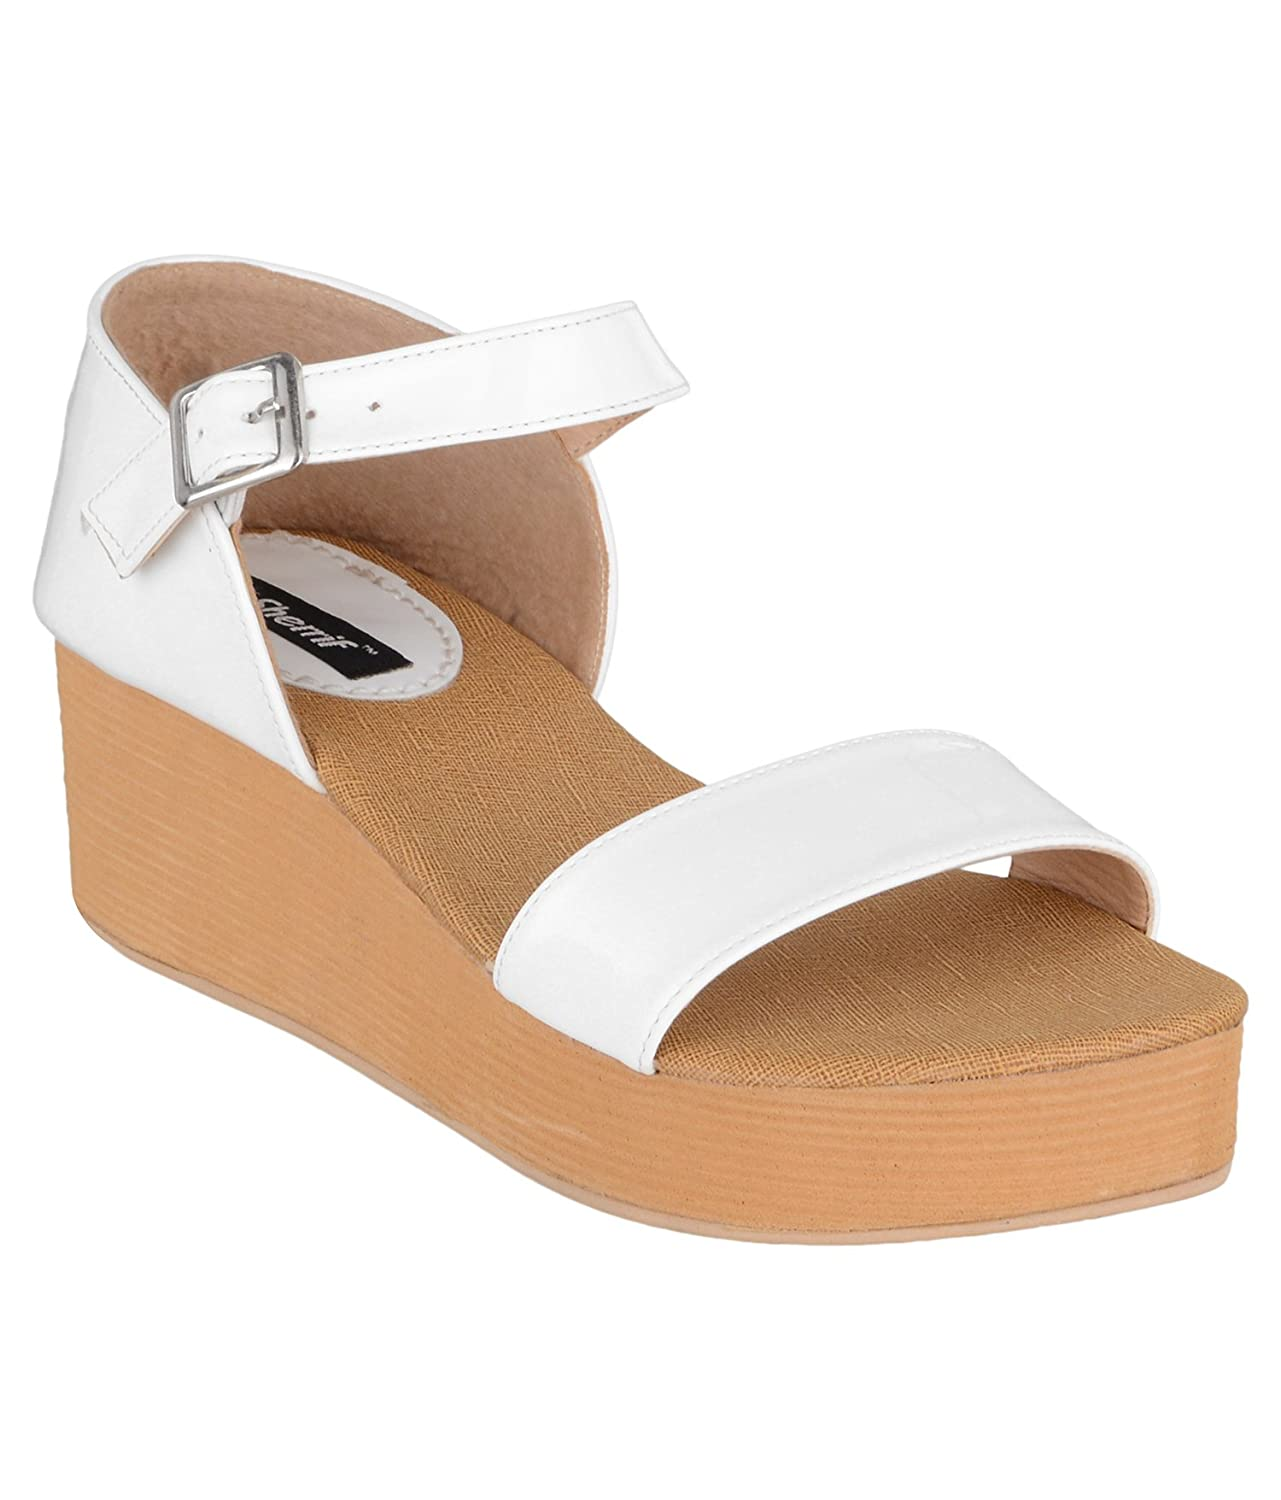 f2188d109761 SHERRIF SHOES Sandals  Buy Online at Low Prices in India - Amazon.in